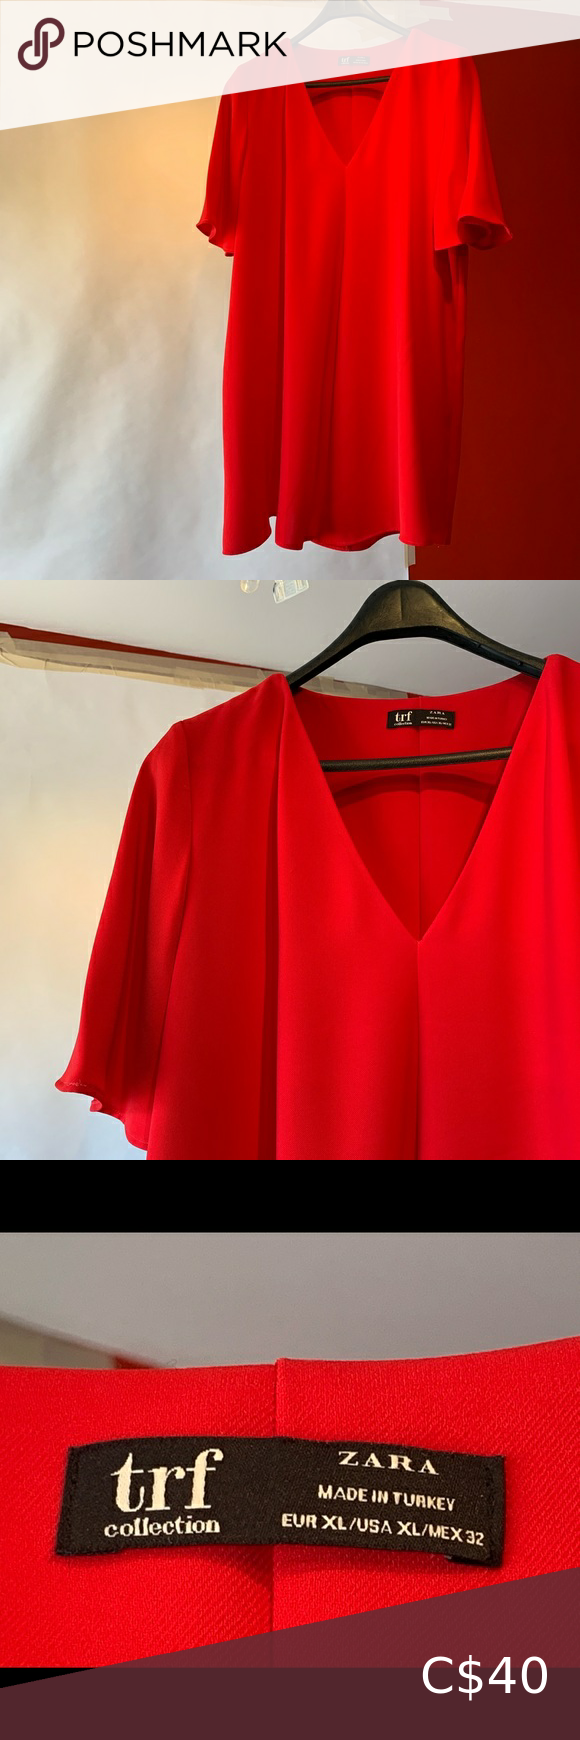 NWOT Zara trf Collection Red Tunic